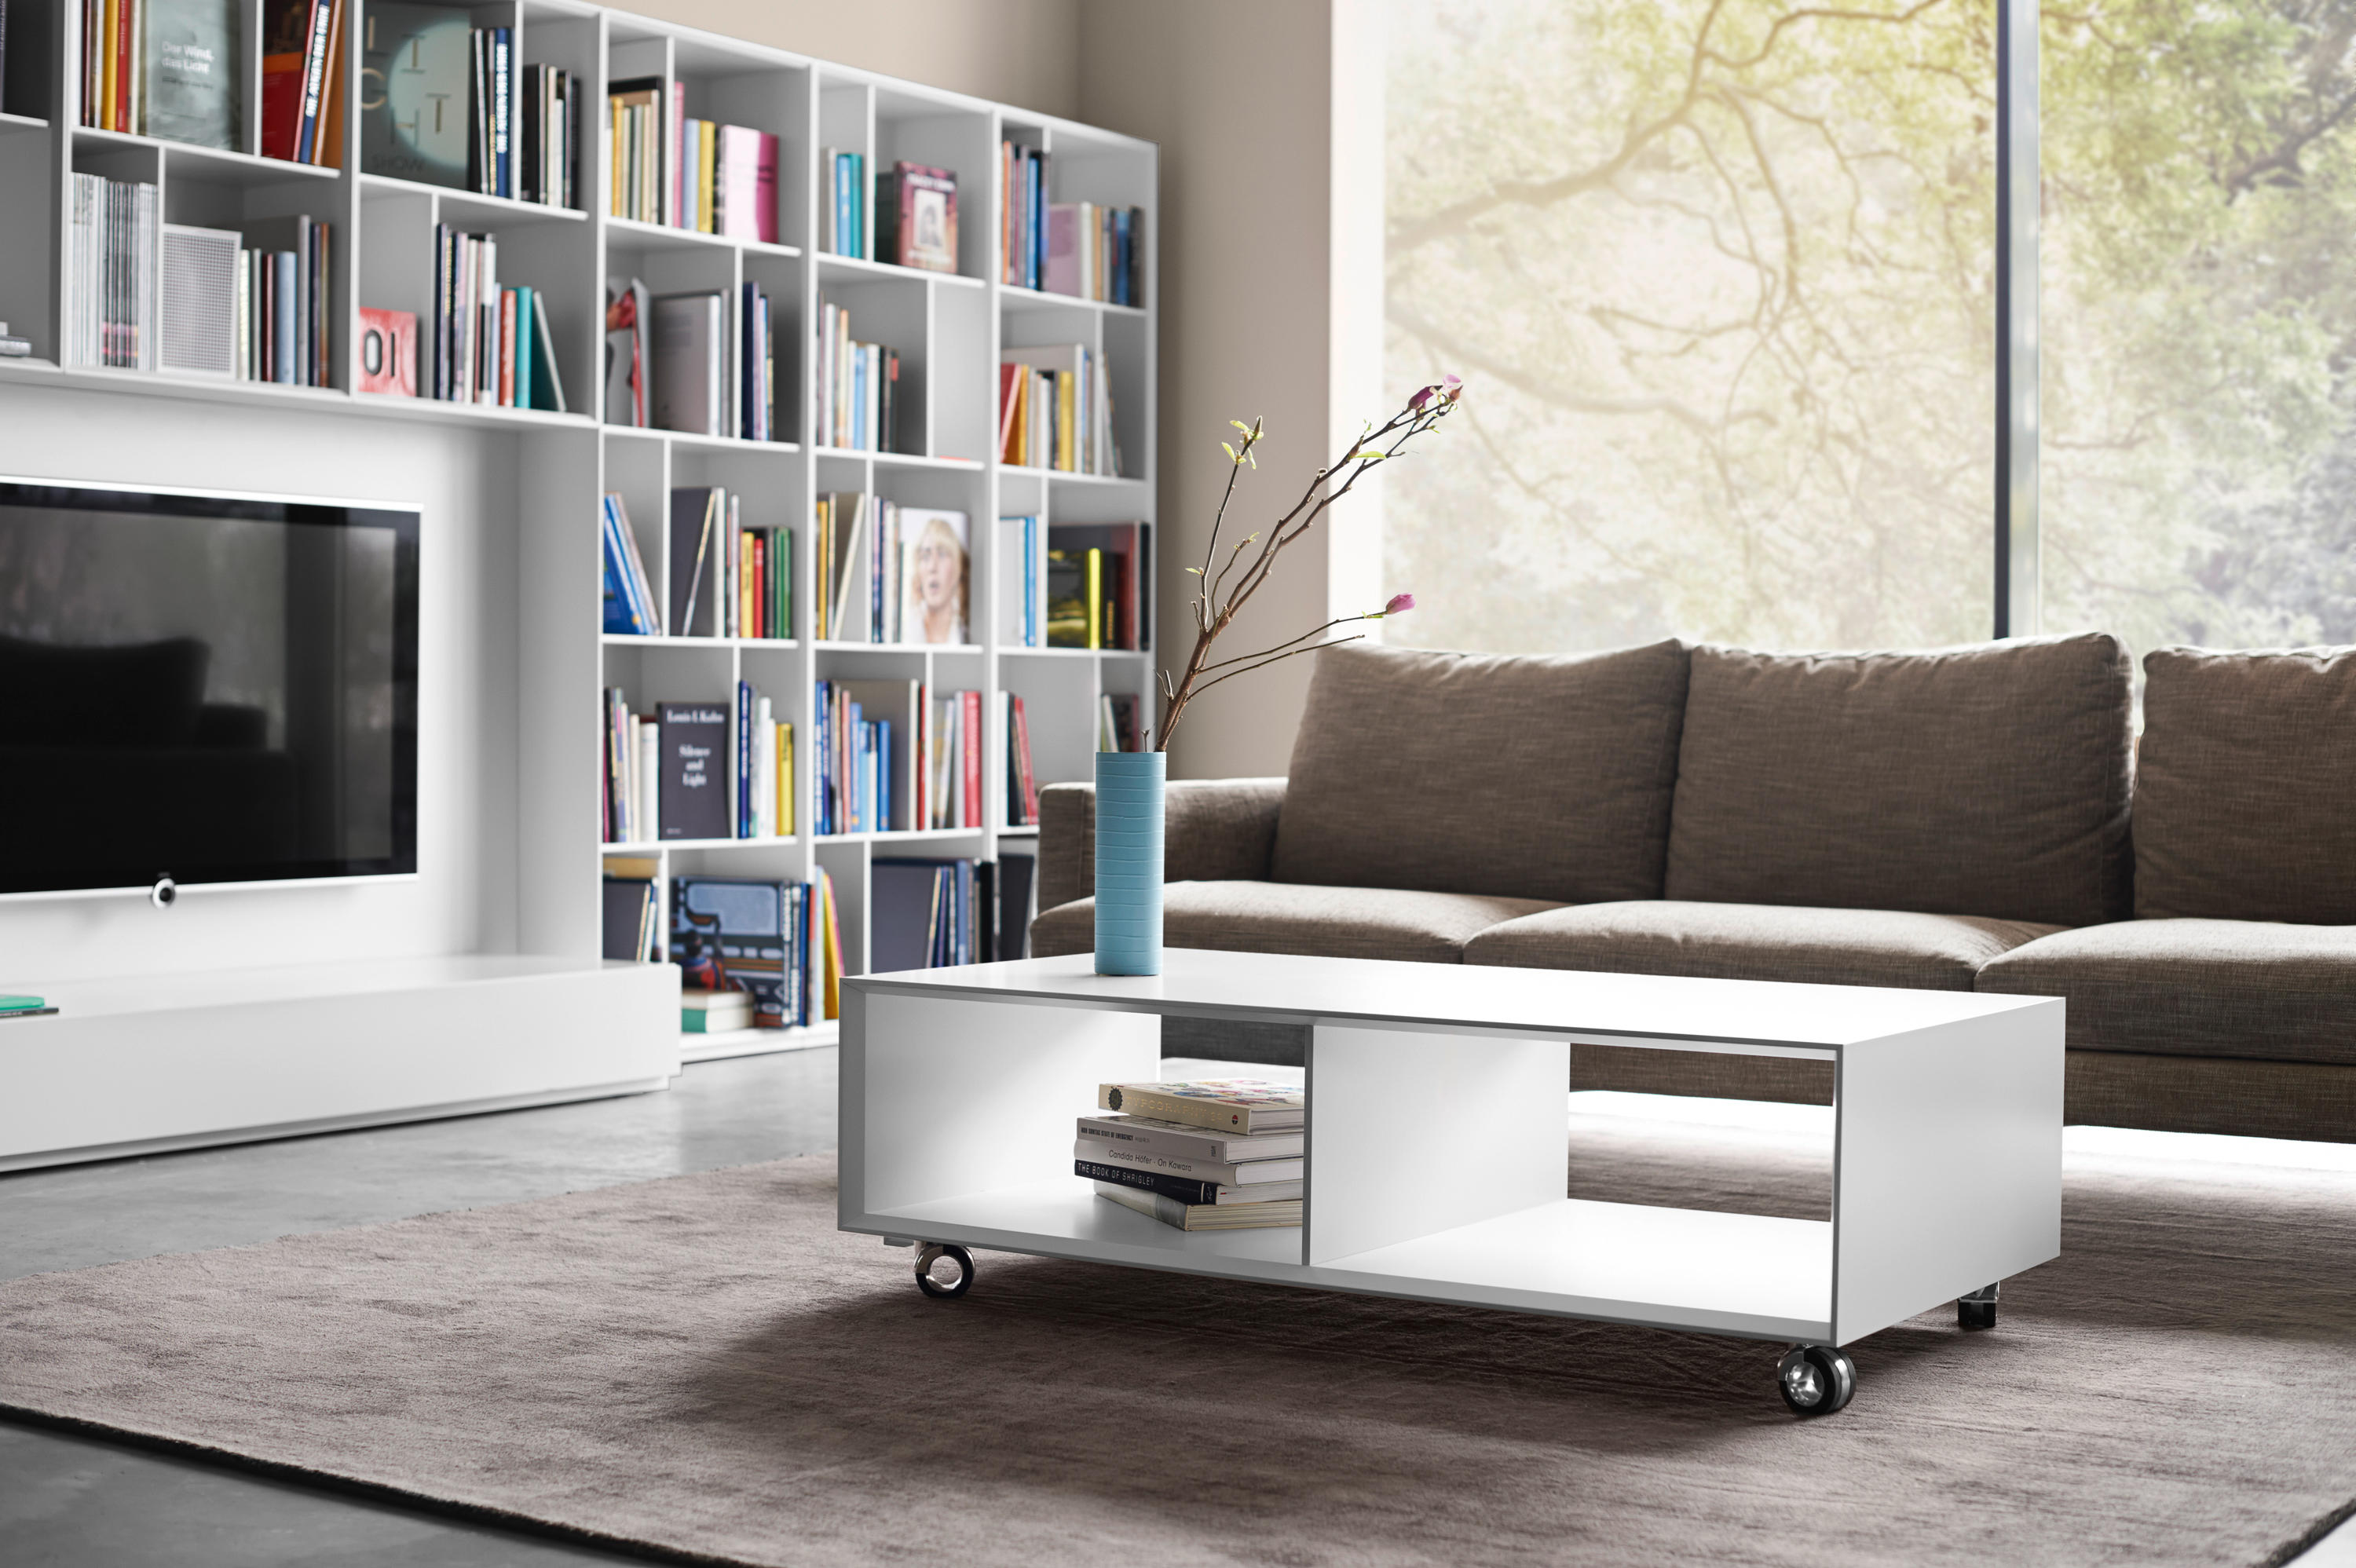 Kettnaker Solo Couchtisch Solo T1 14 007 01 Coffee Tables From Kettnaker Architonic